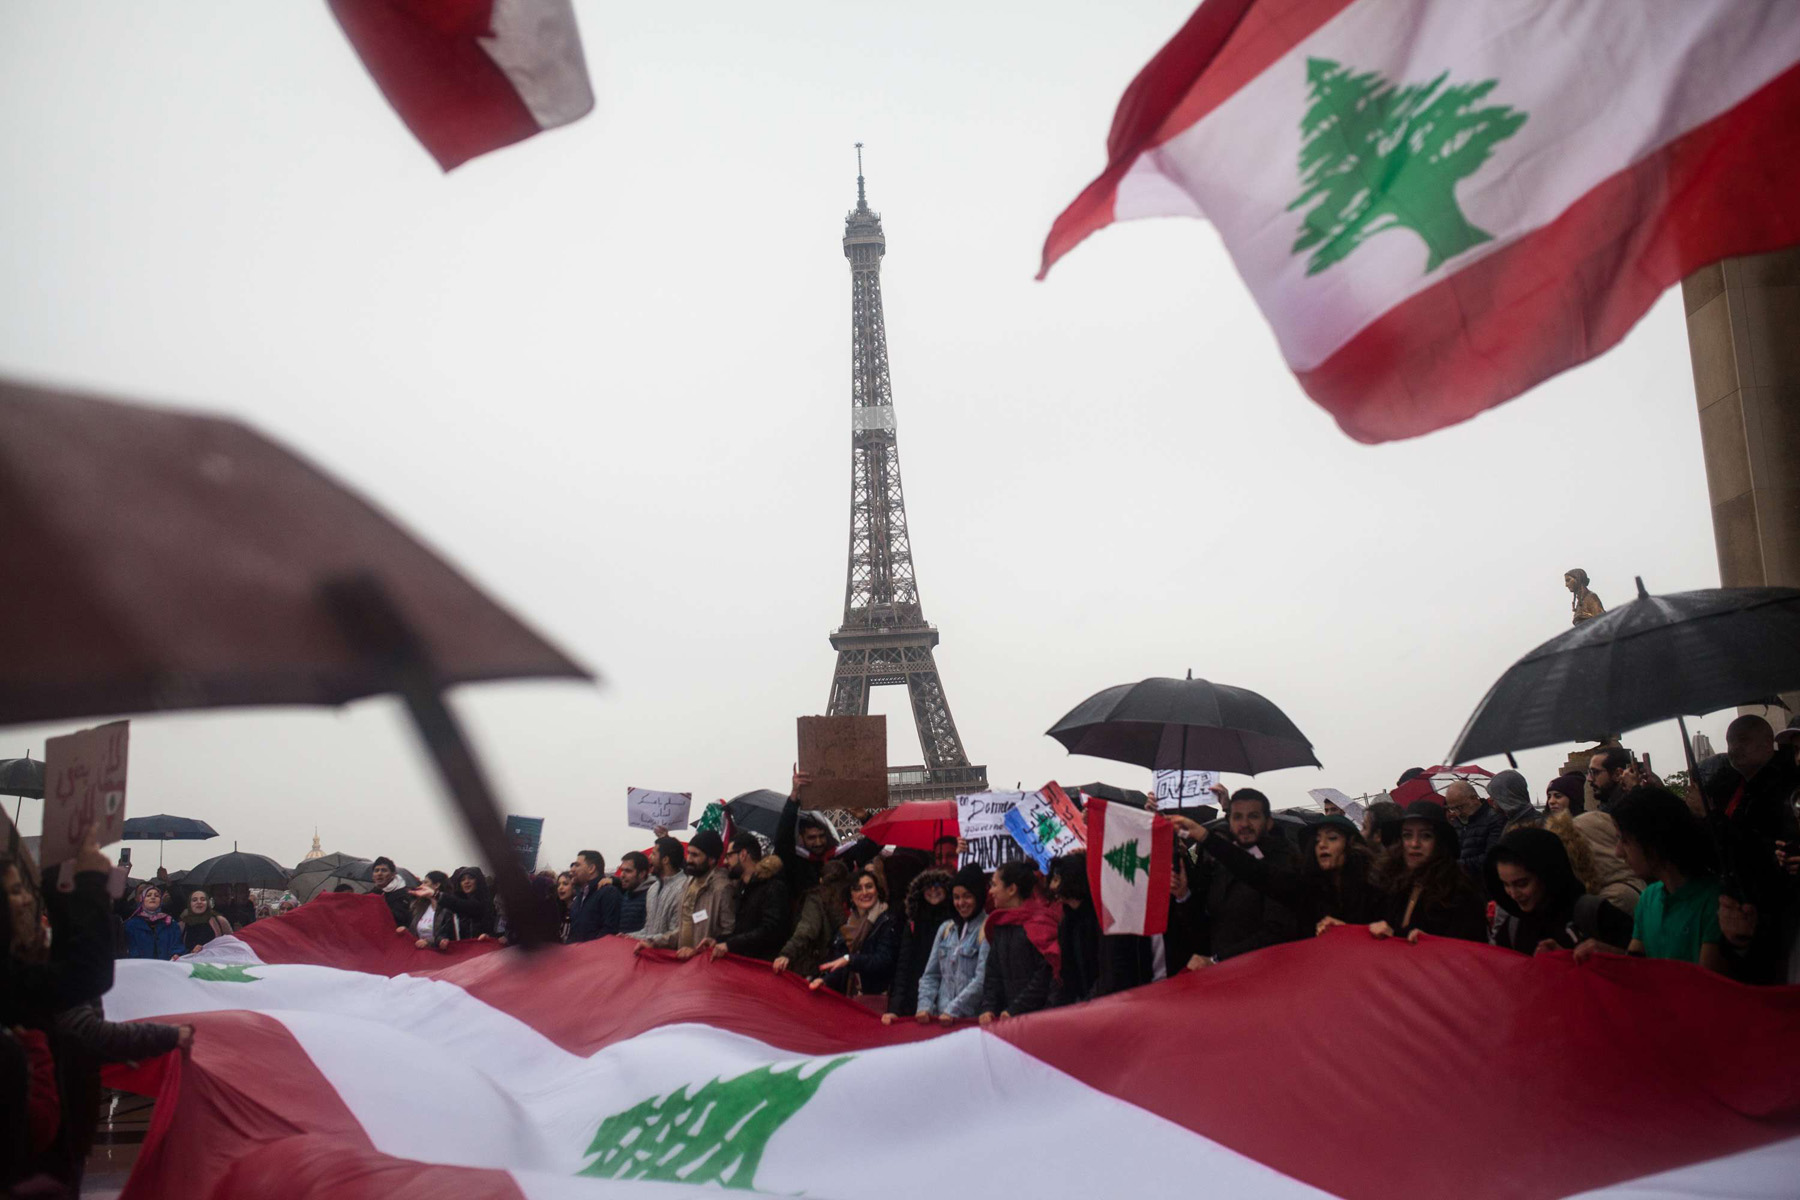 People shout slogans and wave Lebanese national flags as they take part in a rally in Paris to support Lebanon's protests, October 20. (DPA)